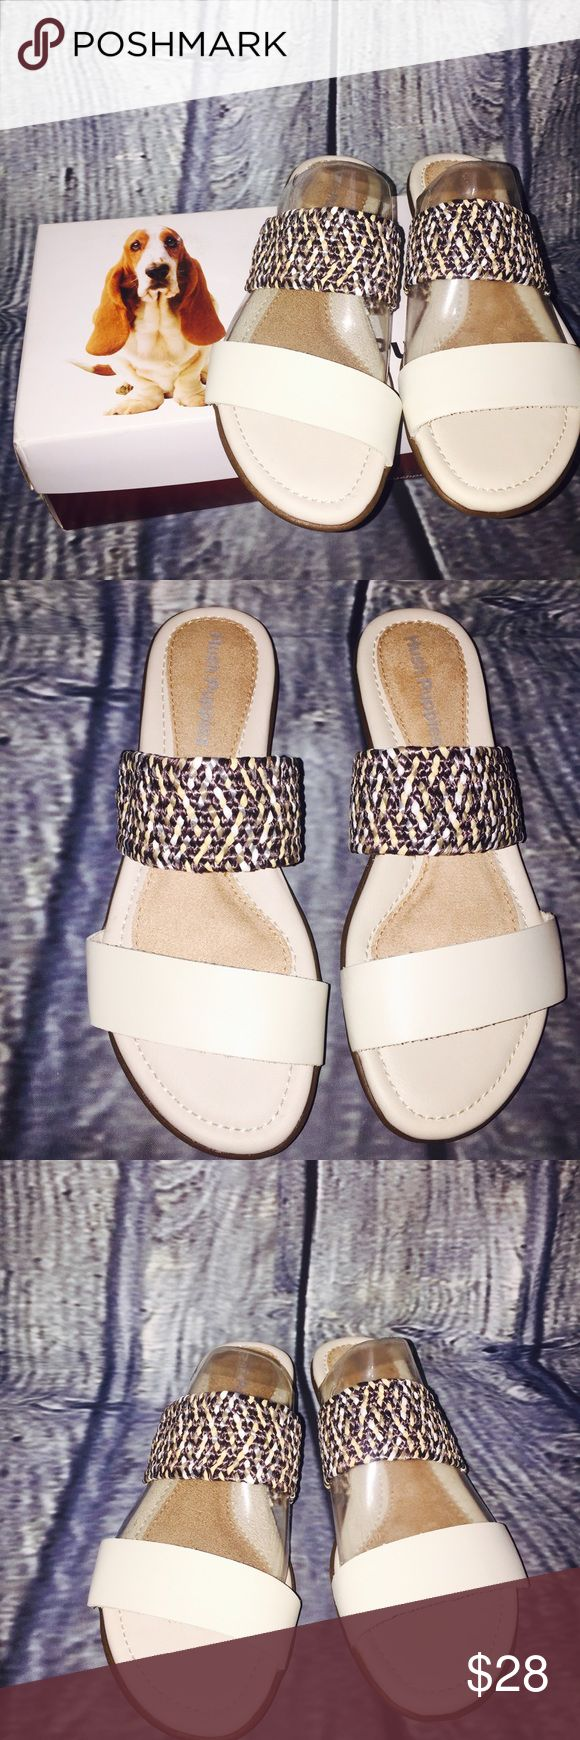 💥SALE💥Hush Puppies Slide Off White Leather Sz 6 Hush Puppies Nishi Slide 6 Dress Sandal Off White Leather Woven Medium B Shoes  Type: Dress Sandal Shoes Brand: Hush Puppies  Model: Nishi Slide Size: 6 Style: Slides Color: Off White  Material: Leather Width: Medium B,M Heel Height: Low 3/4 in. to 1 1/2 in. Features: Woven   Condition: New in box Hush Puppies Shoes Sandals